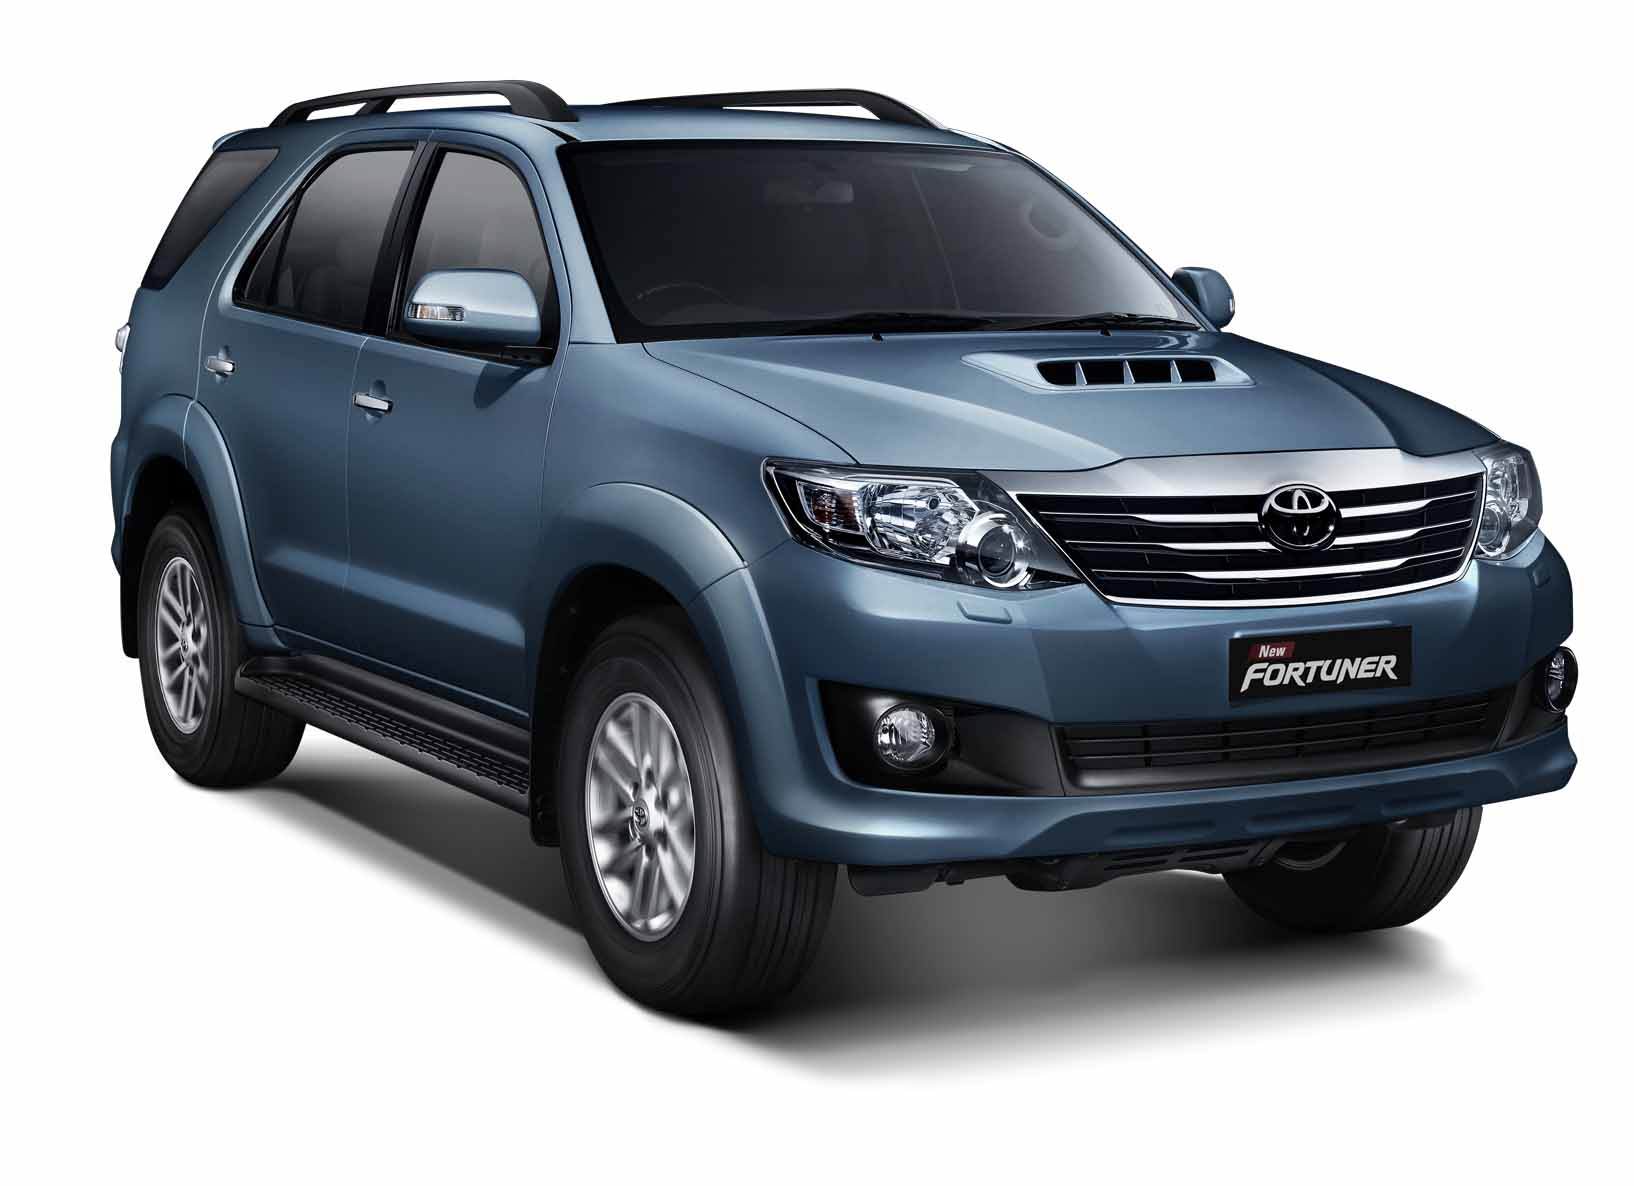 New Toyota Fortuner Toyotas International Multi purpose Vehicle (IMV) sales crosses record 5 million units